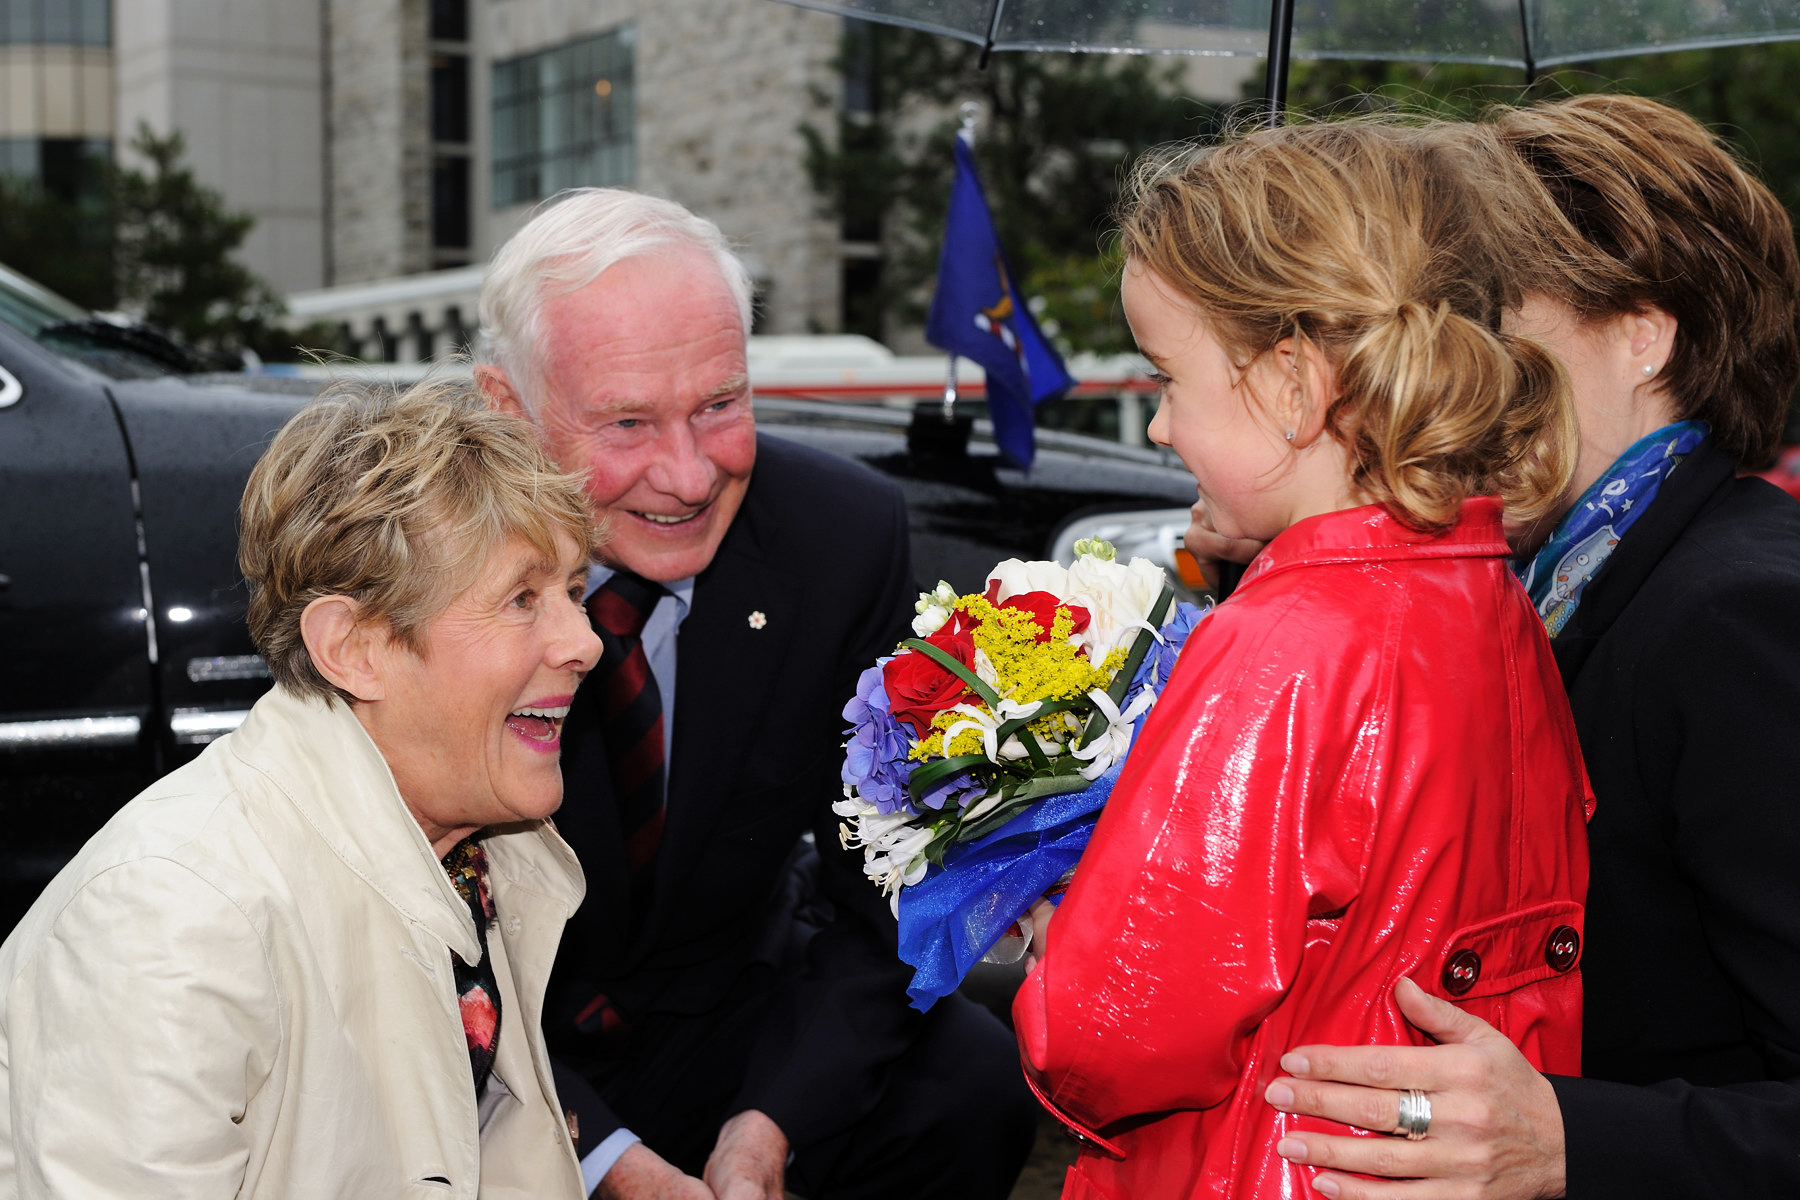 Their Excellencies were officially welcomed at the Legislative Assembly of British Columbia where they were presented with a bouquet of flowers from Daisy Irwin (age 6).